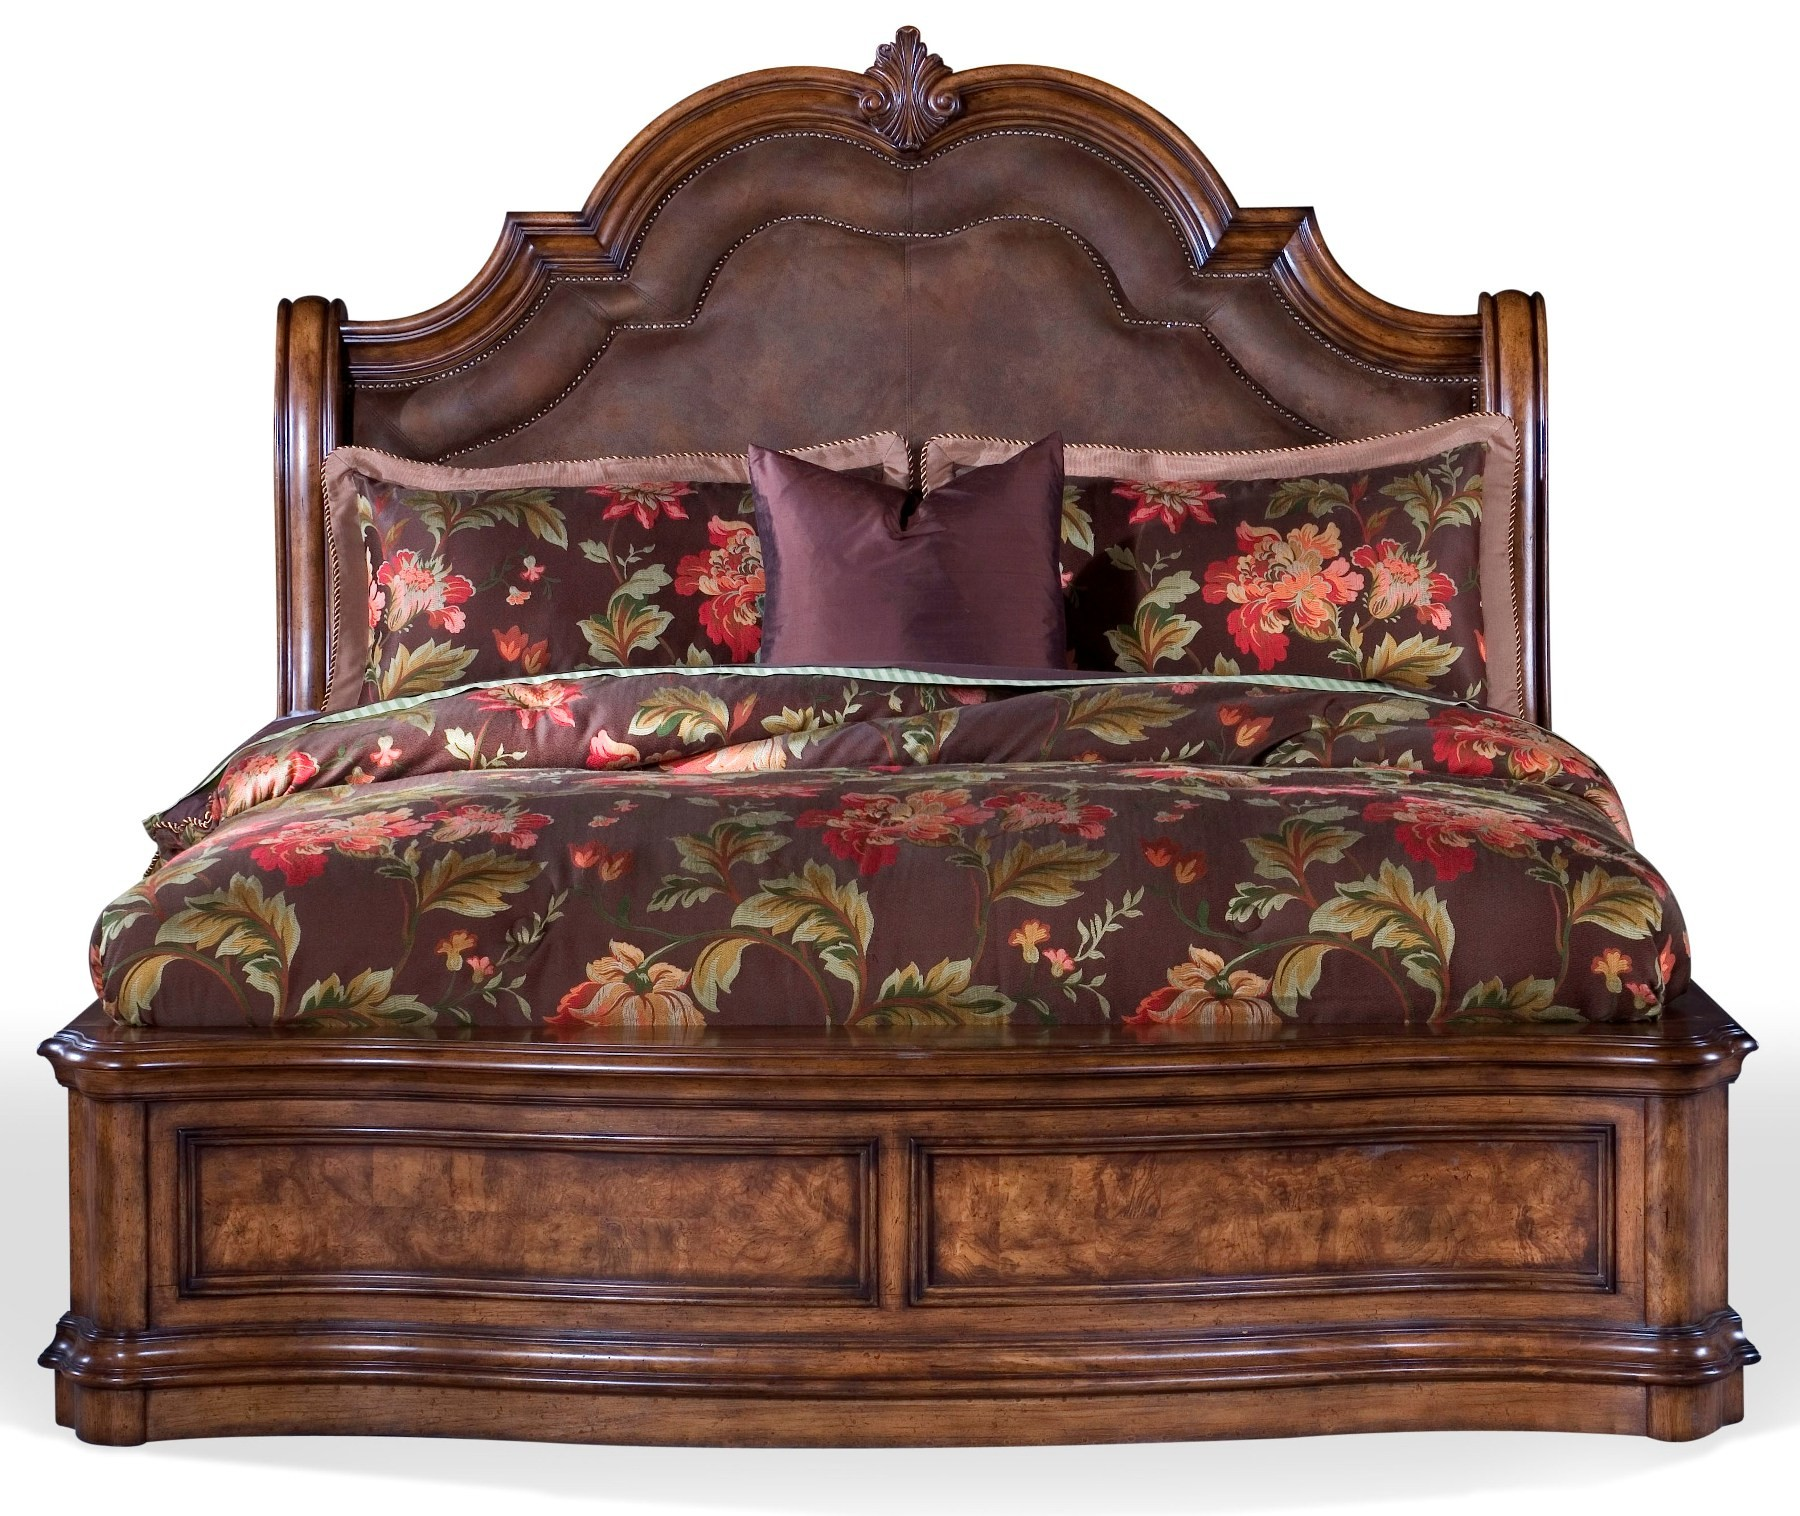 sleigh bedroom set san mateo sleigh bedroom set from pulaski 662170 662171 13170